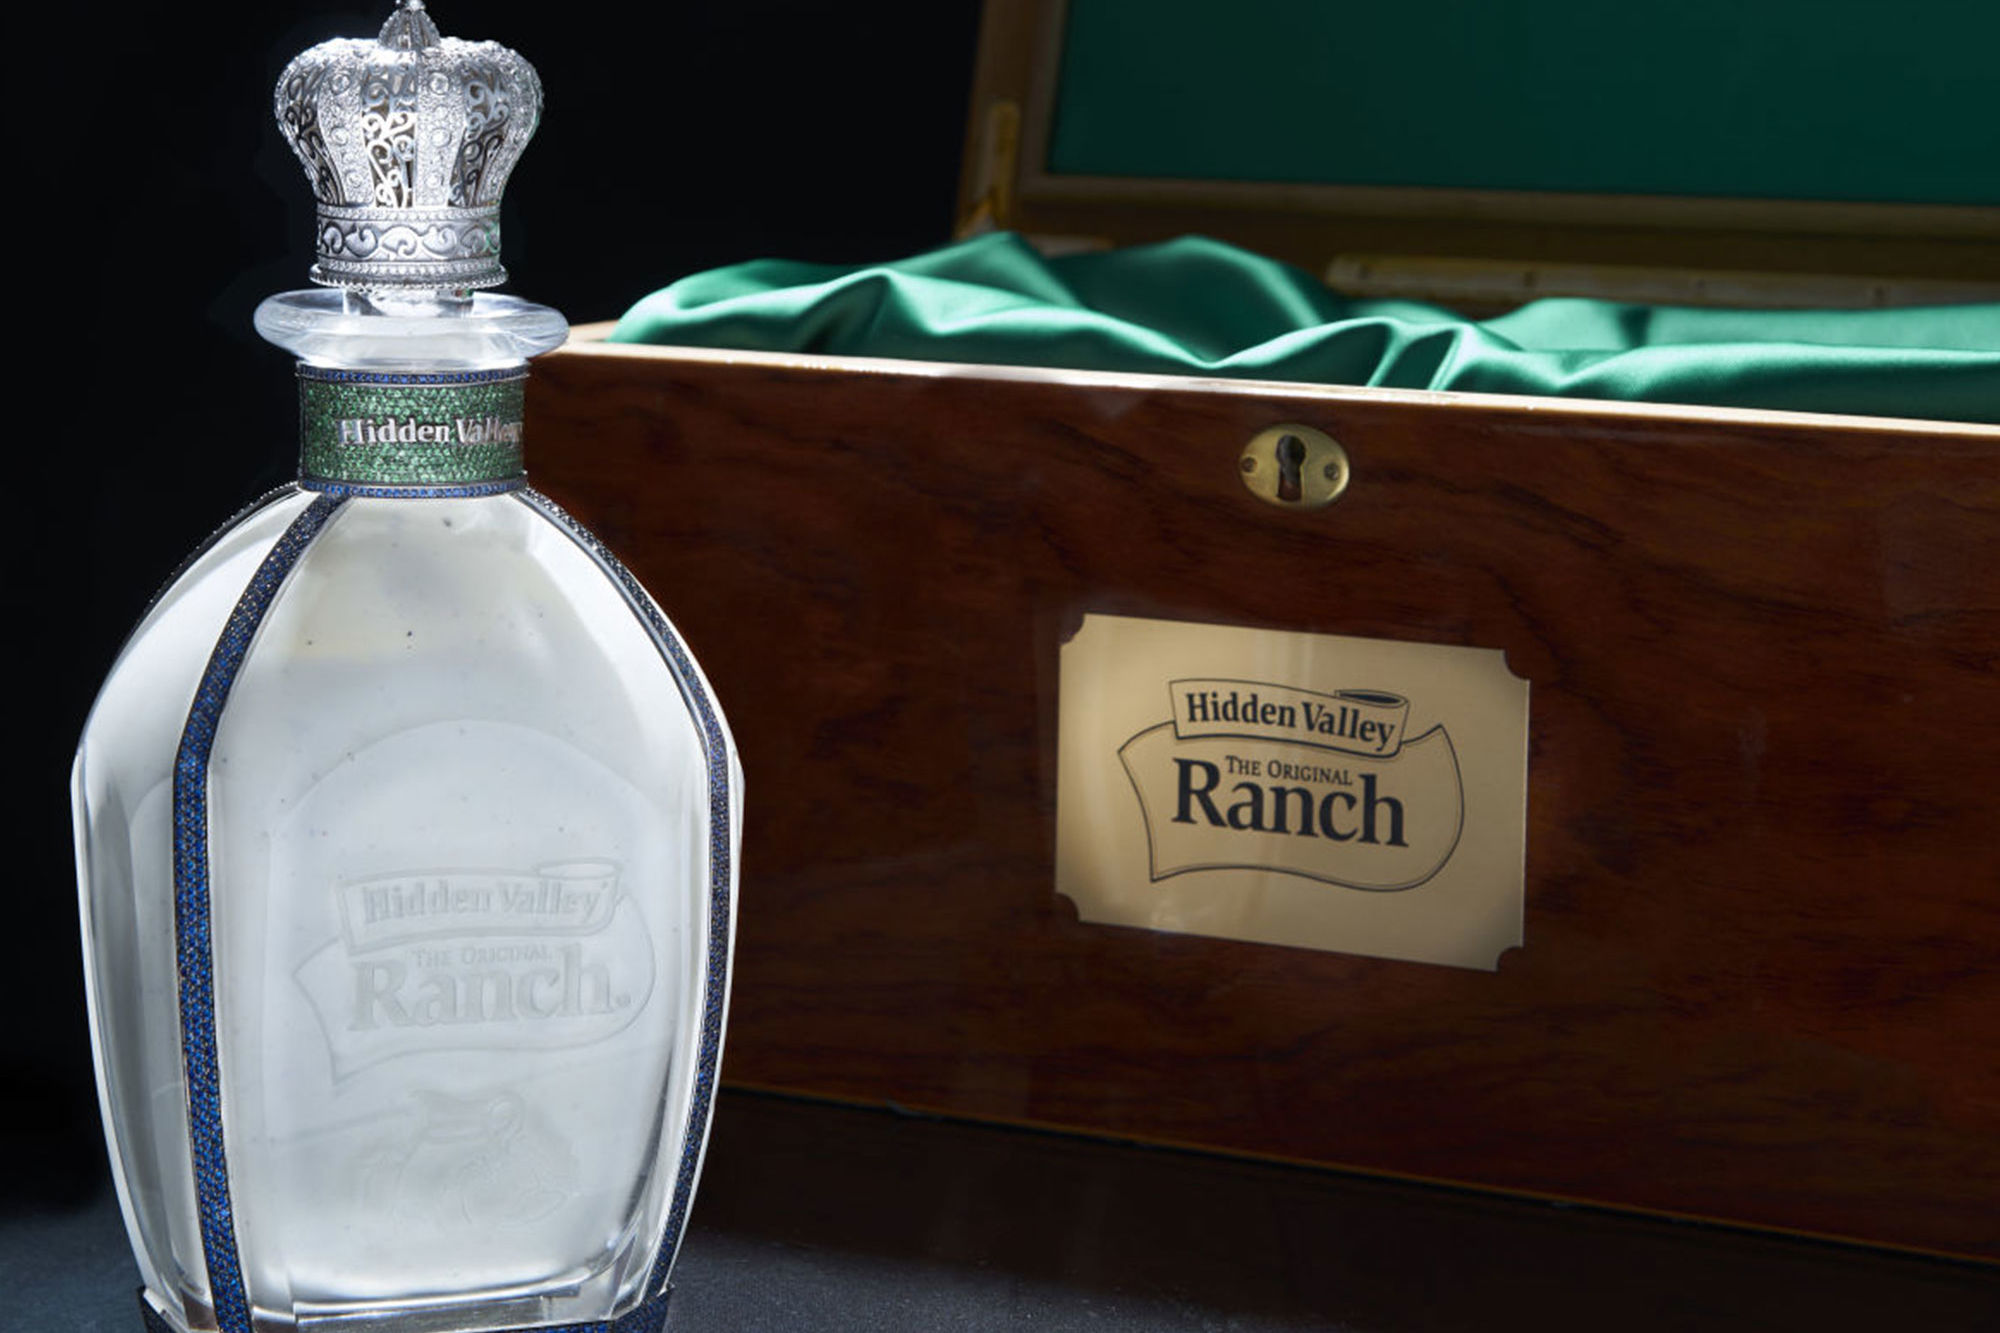 Hidden Valley Is Giving a $35,000 Diamond-Encrusted Bottle of Ranch Dressing to Prince Harry and Meghan Markle